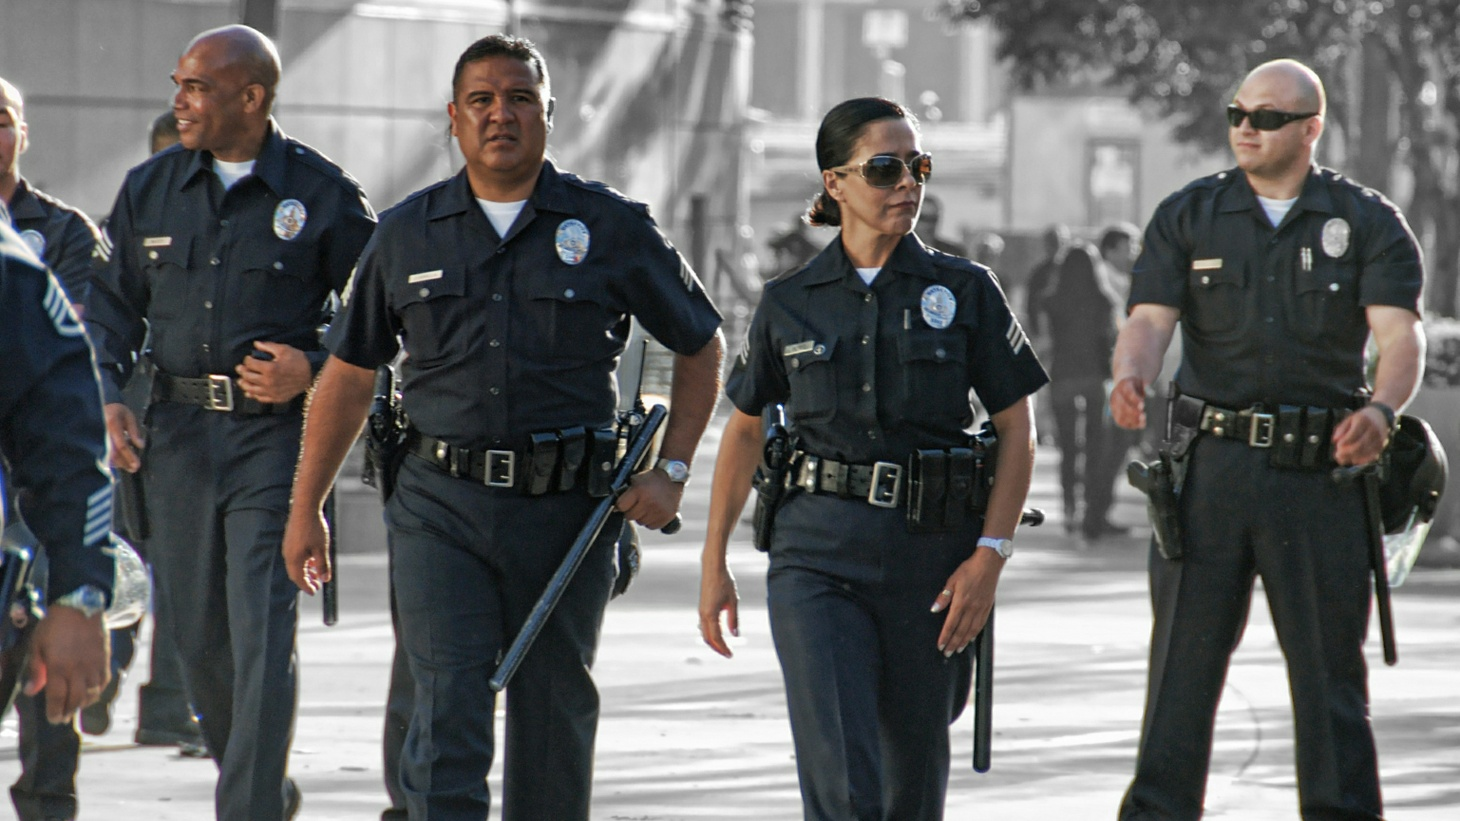 Segments from the past year that examine policing in Los Angeles, the culture of the LAPD and life in South L.A.